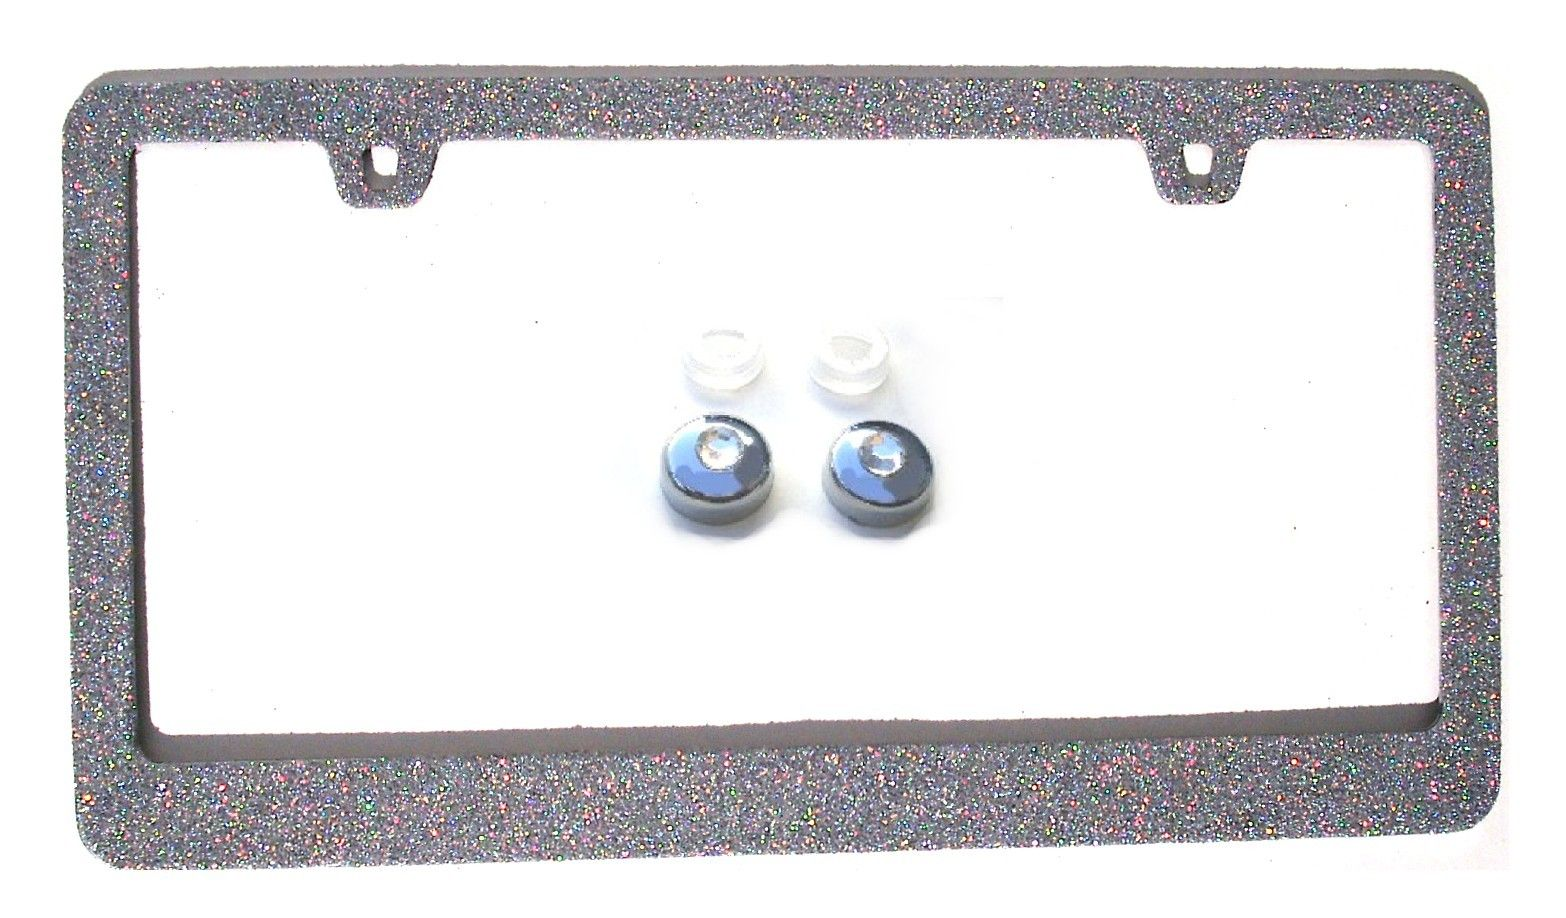 Solid Bling Silver Glitter Rhinestone License Plate Frame Caps Sparkle